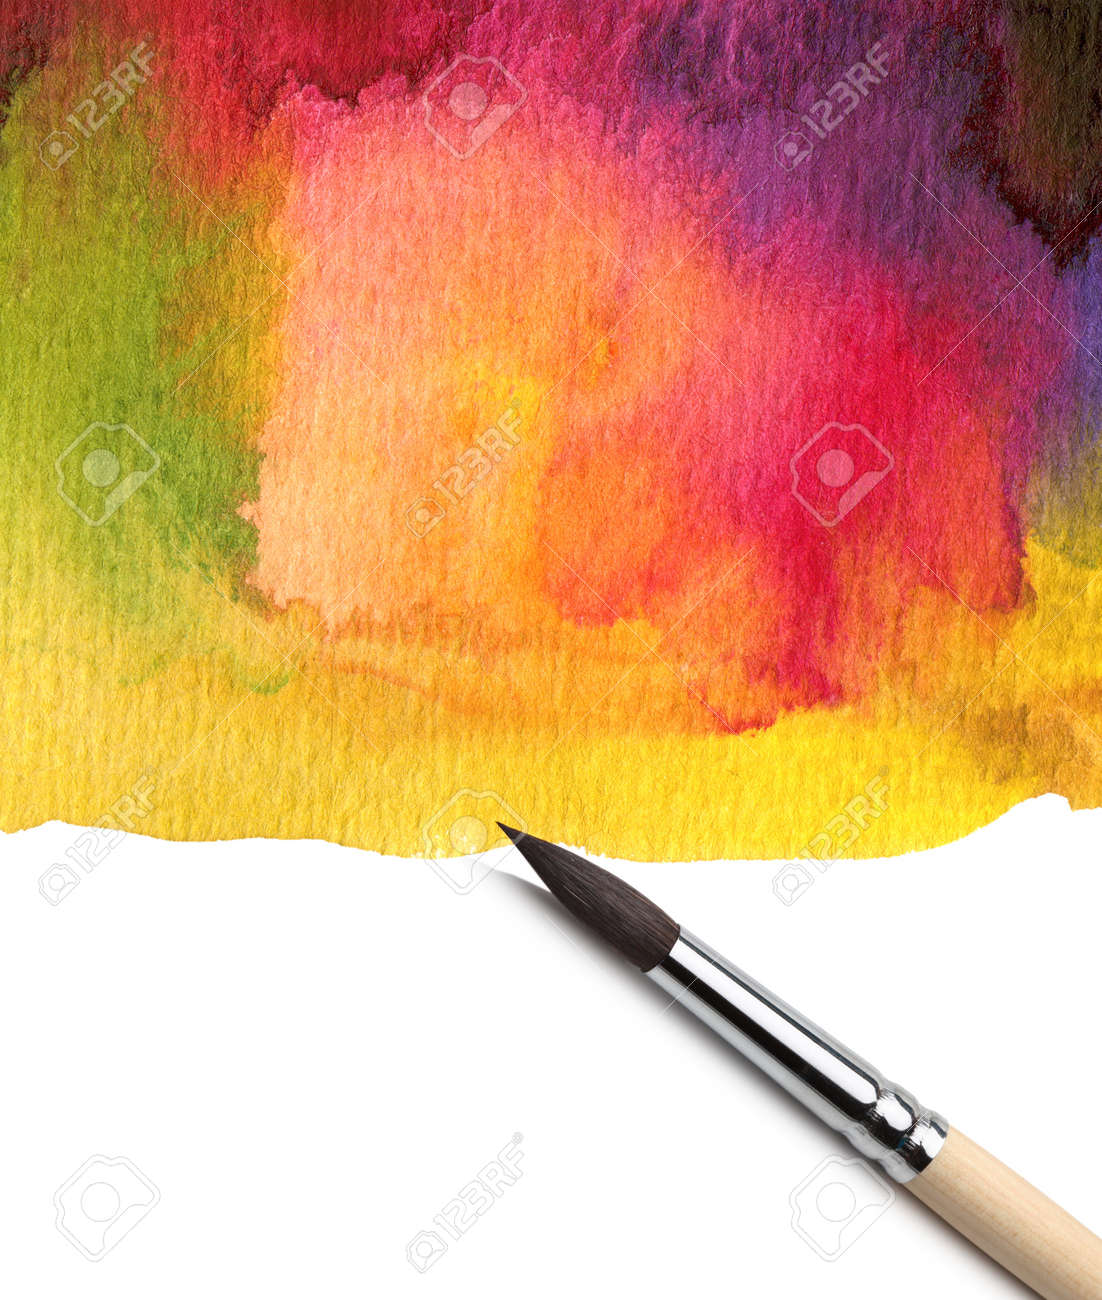 Watercolor art history brush - Stock Photo Watercolor Painted Background With Brush